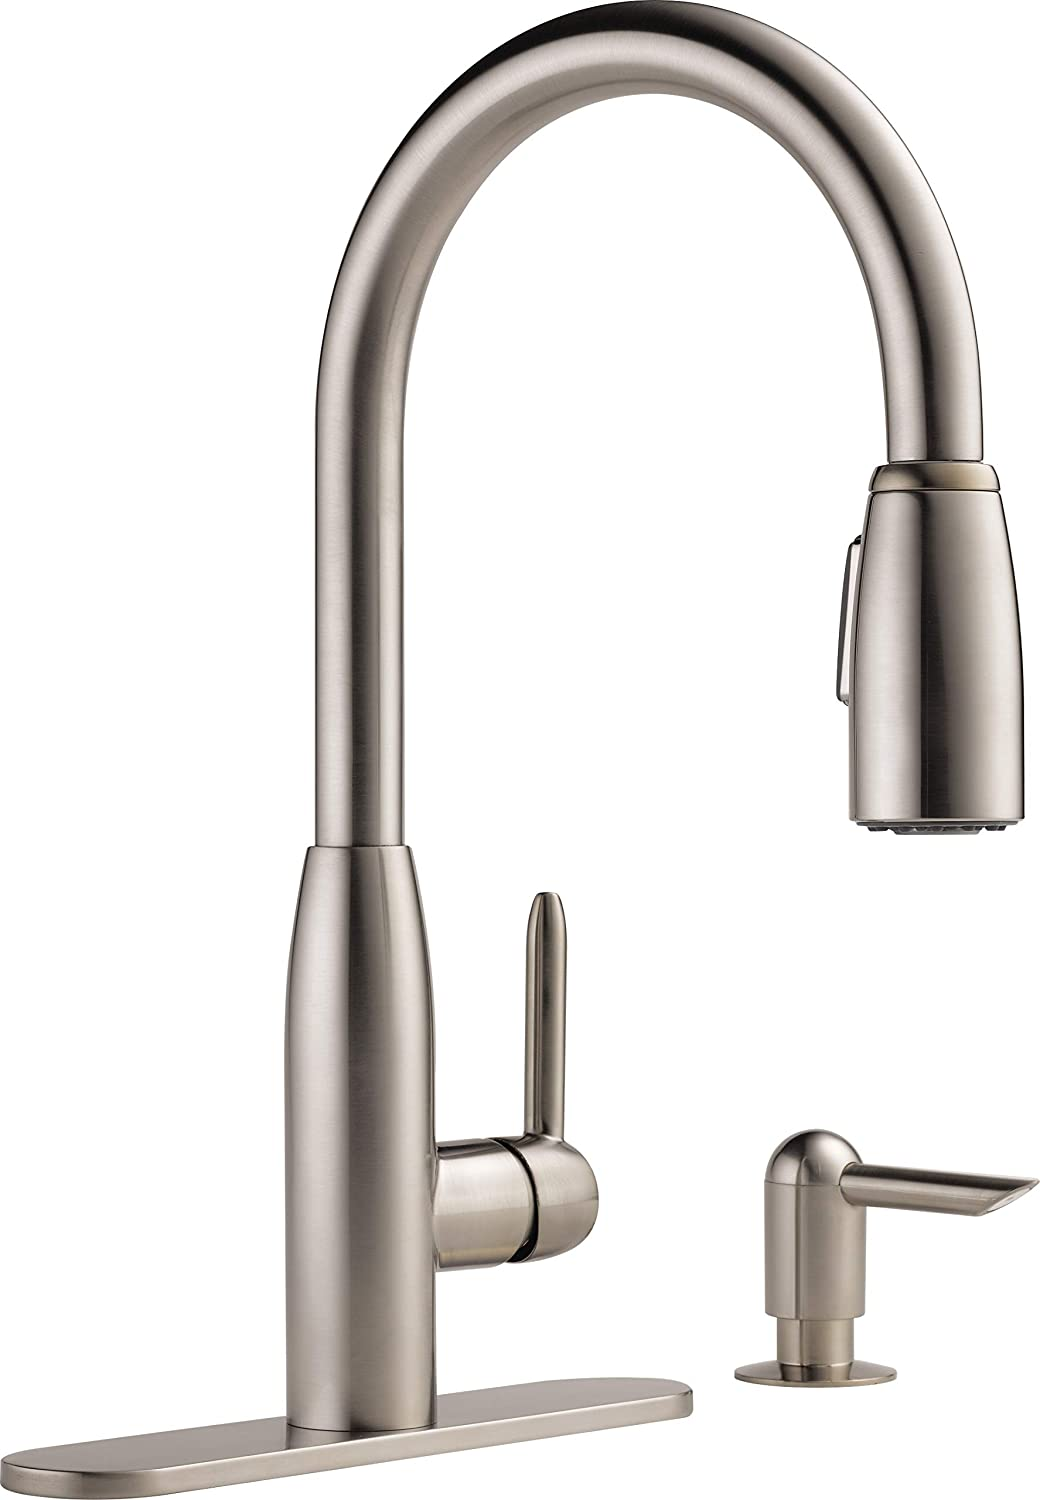 Peerless Single-Handle Kitchen Sink Faucet with Pull Down Sprayer and Soap Dispenser, Stainless P88103LF-SSSD-L